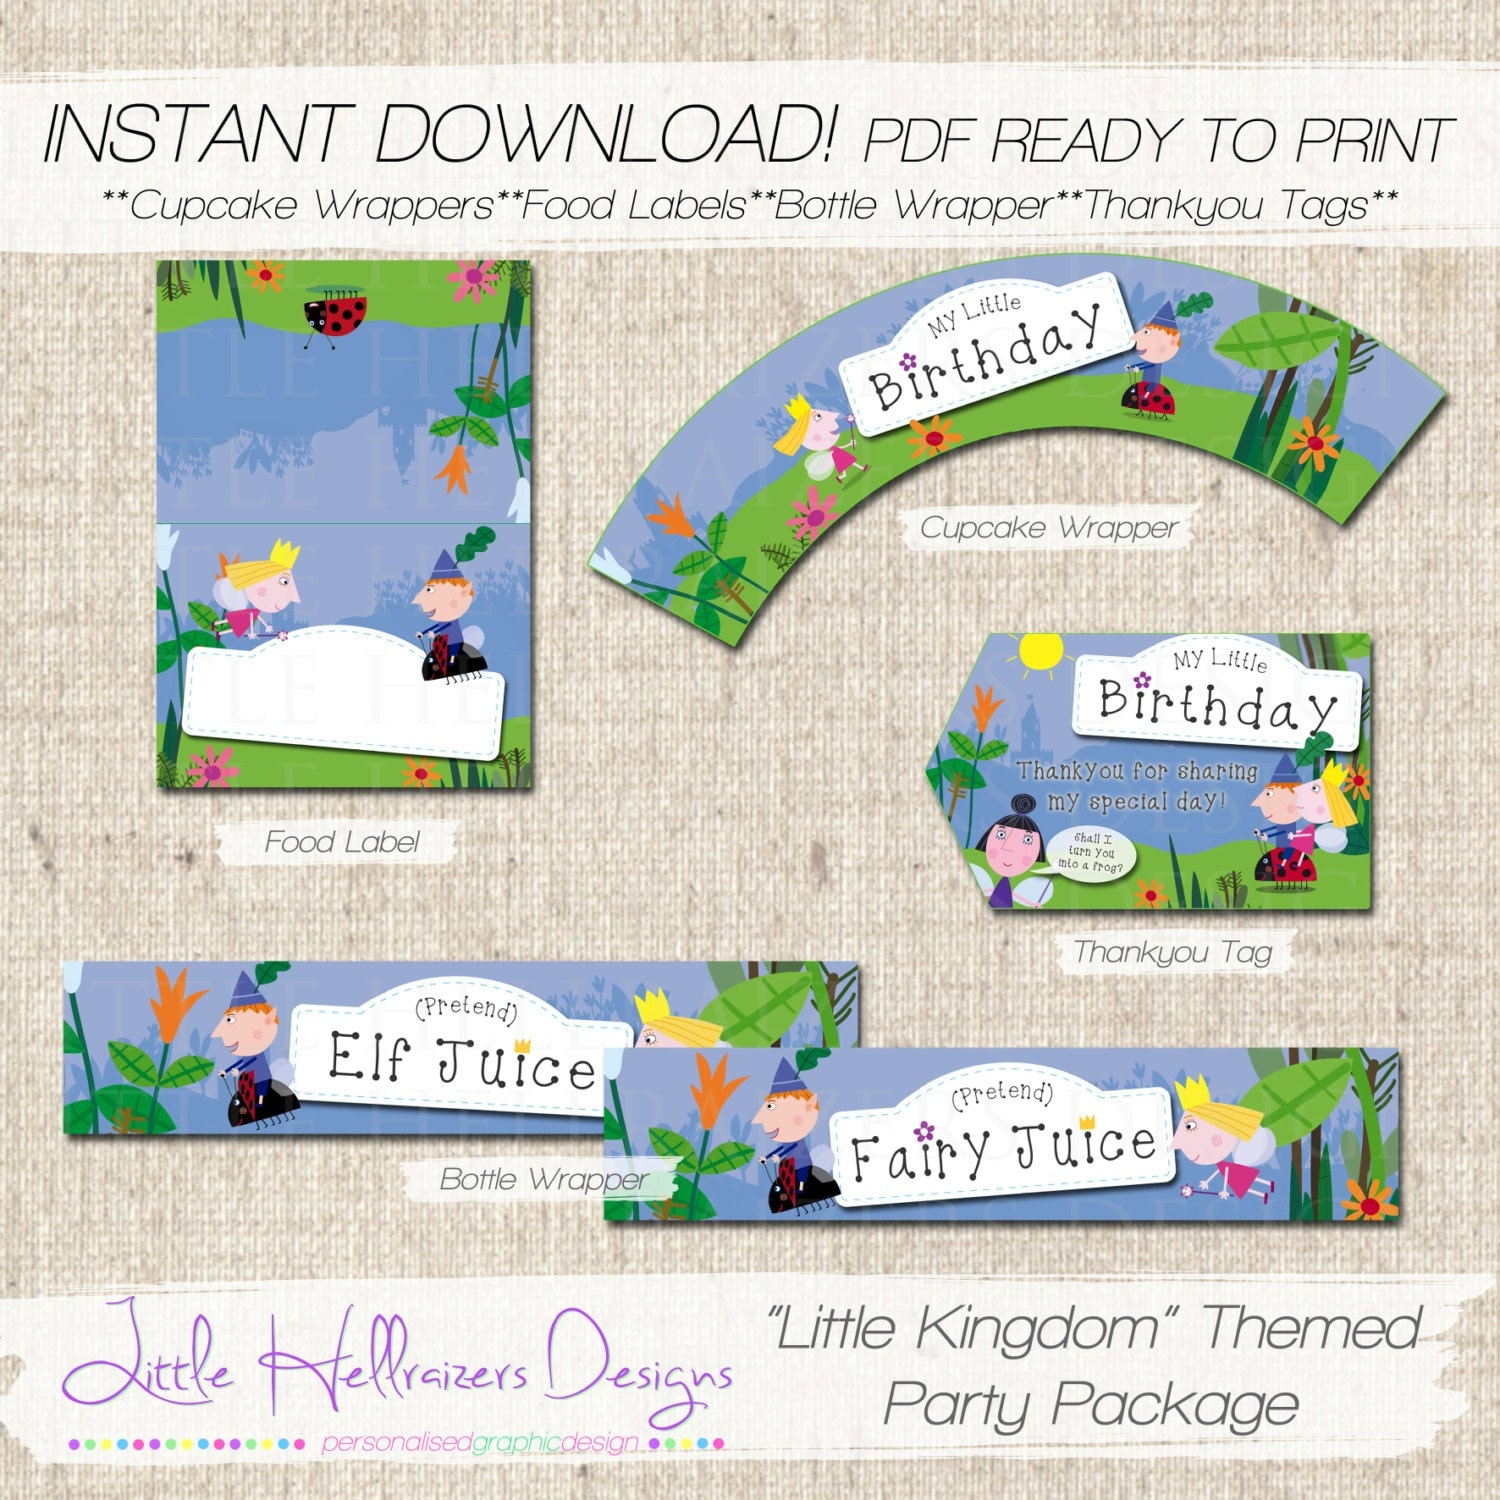 INSTANT DOWNLOAD Little Kingdom Themed Party